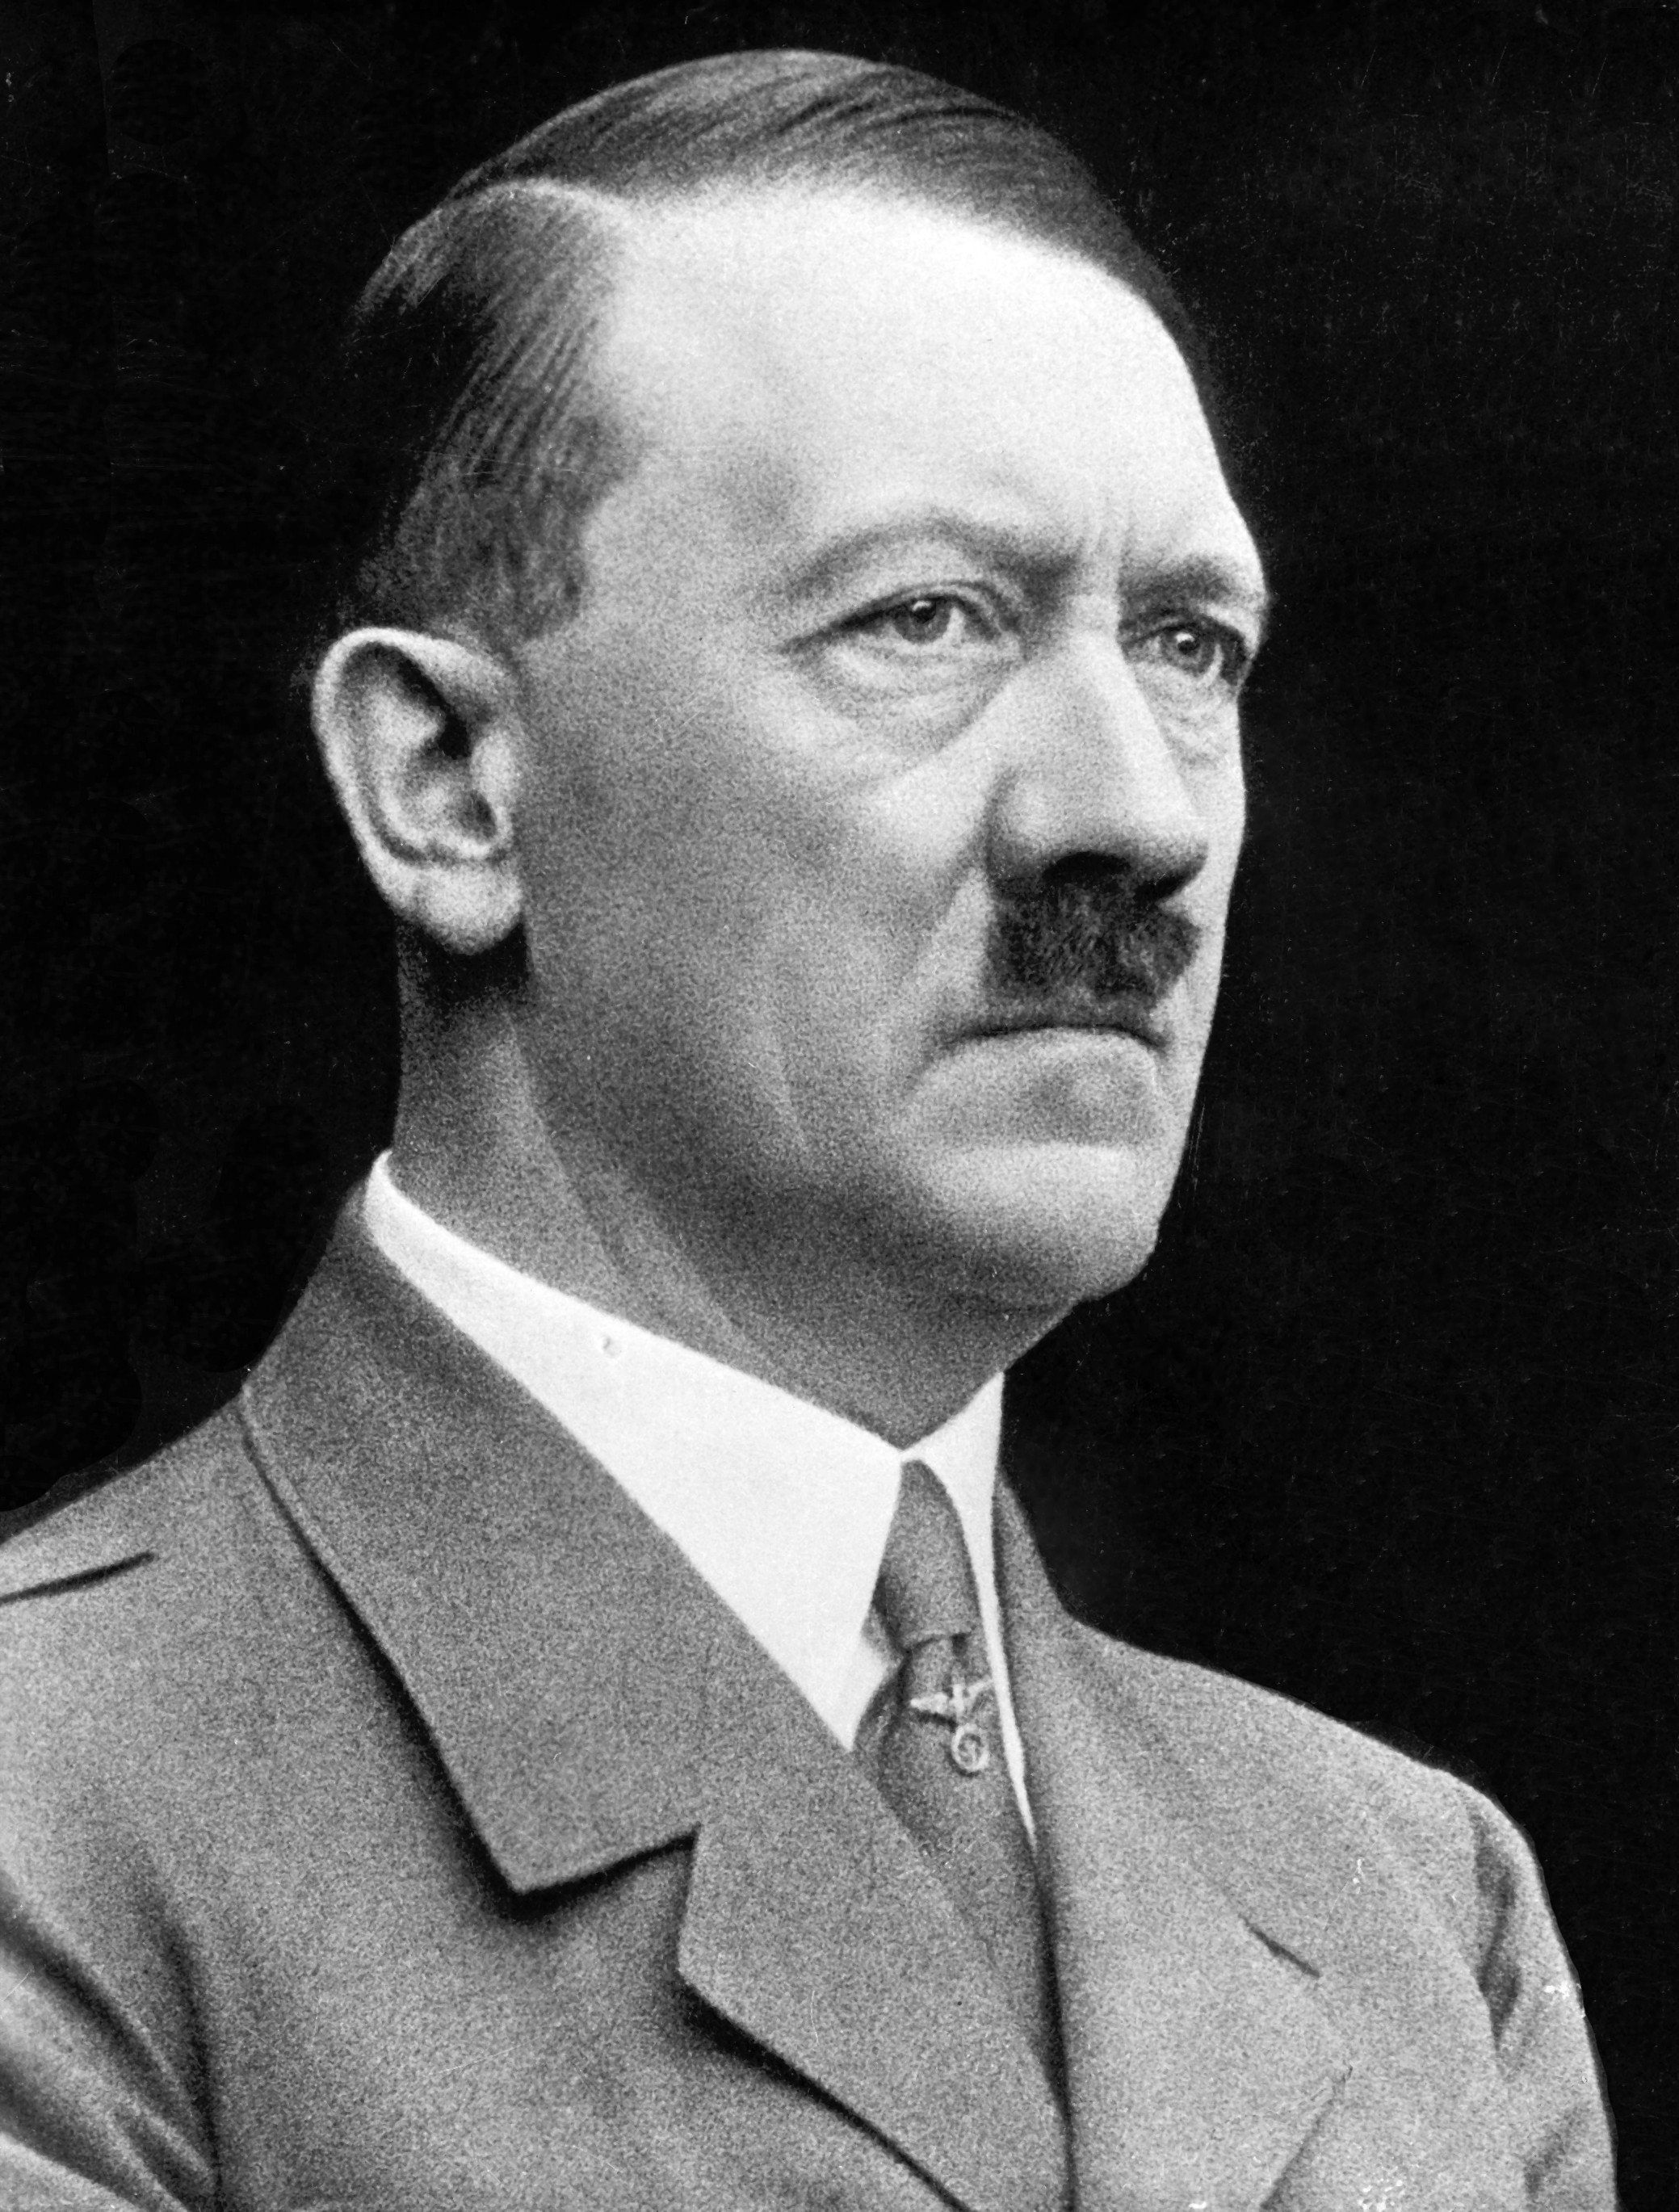 https://upload.wikimedia.org/wikipedia/commons/d/dc/Adolf_Hitler_cropped_restored.jpg